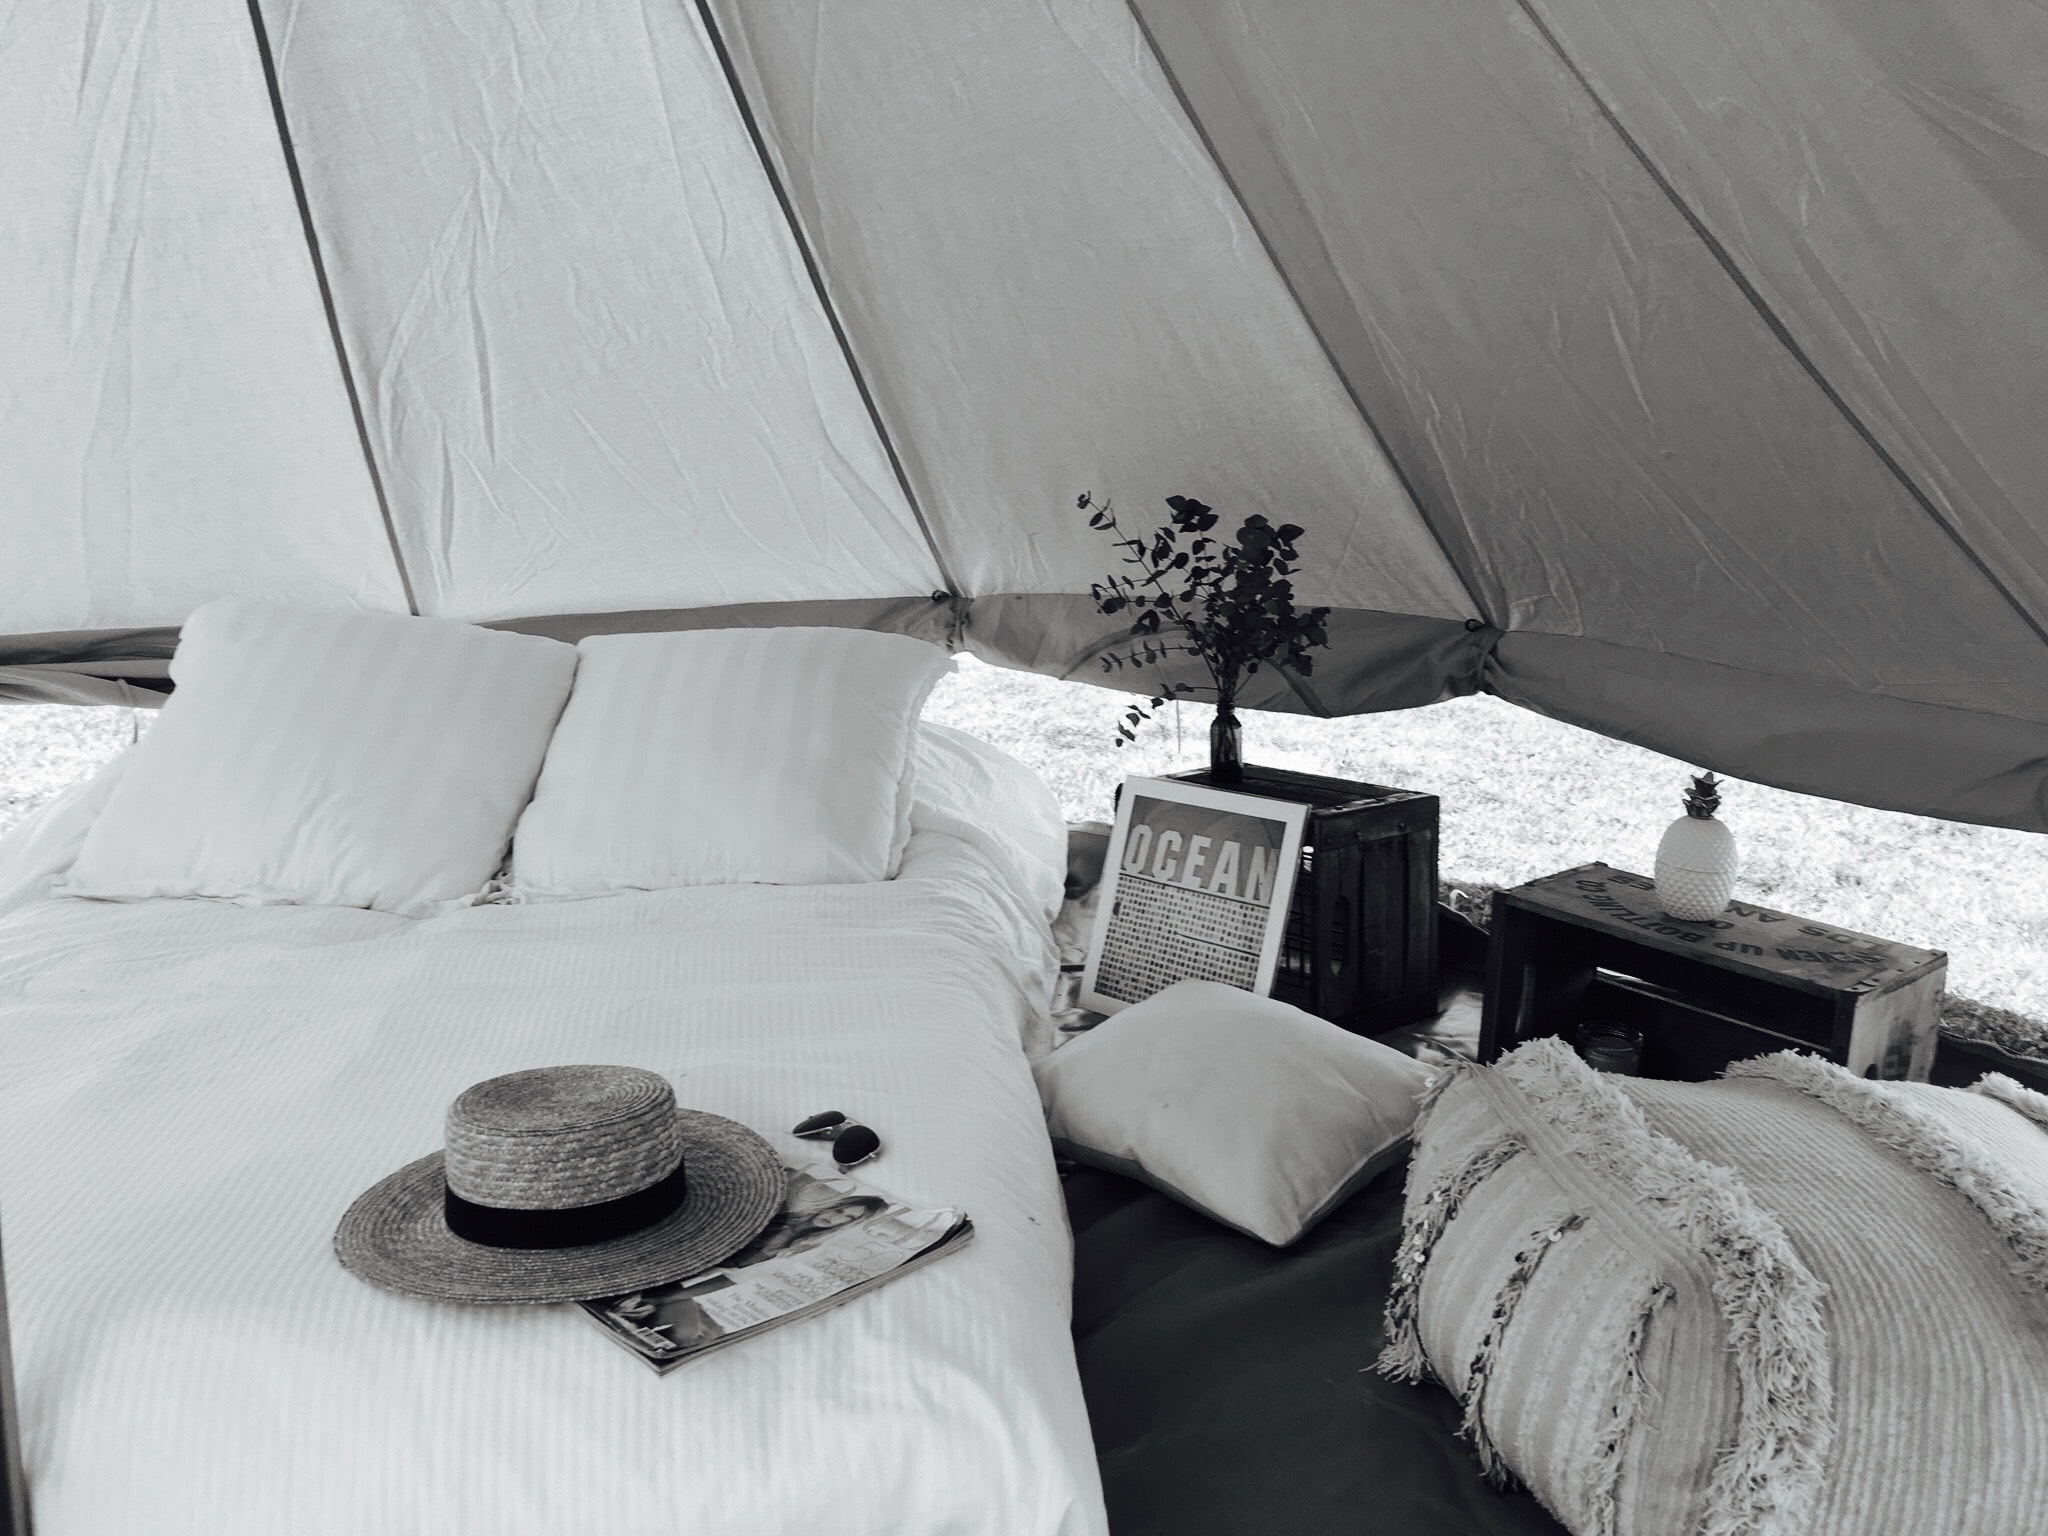 We are for loversof crazy summer adventures, - ...but with the niceties of crisp white sheets and a glass of french red on arrival